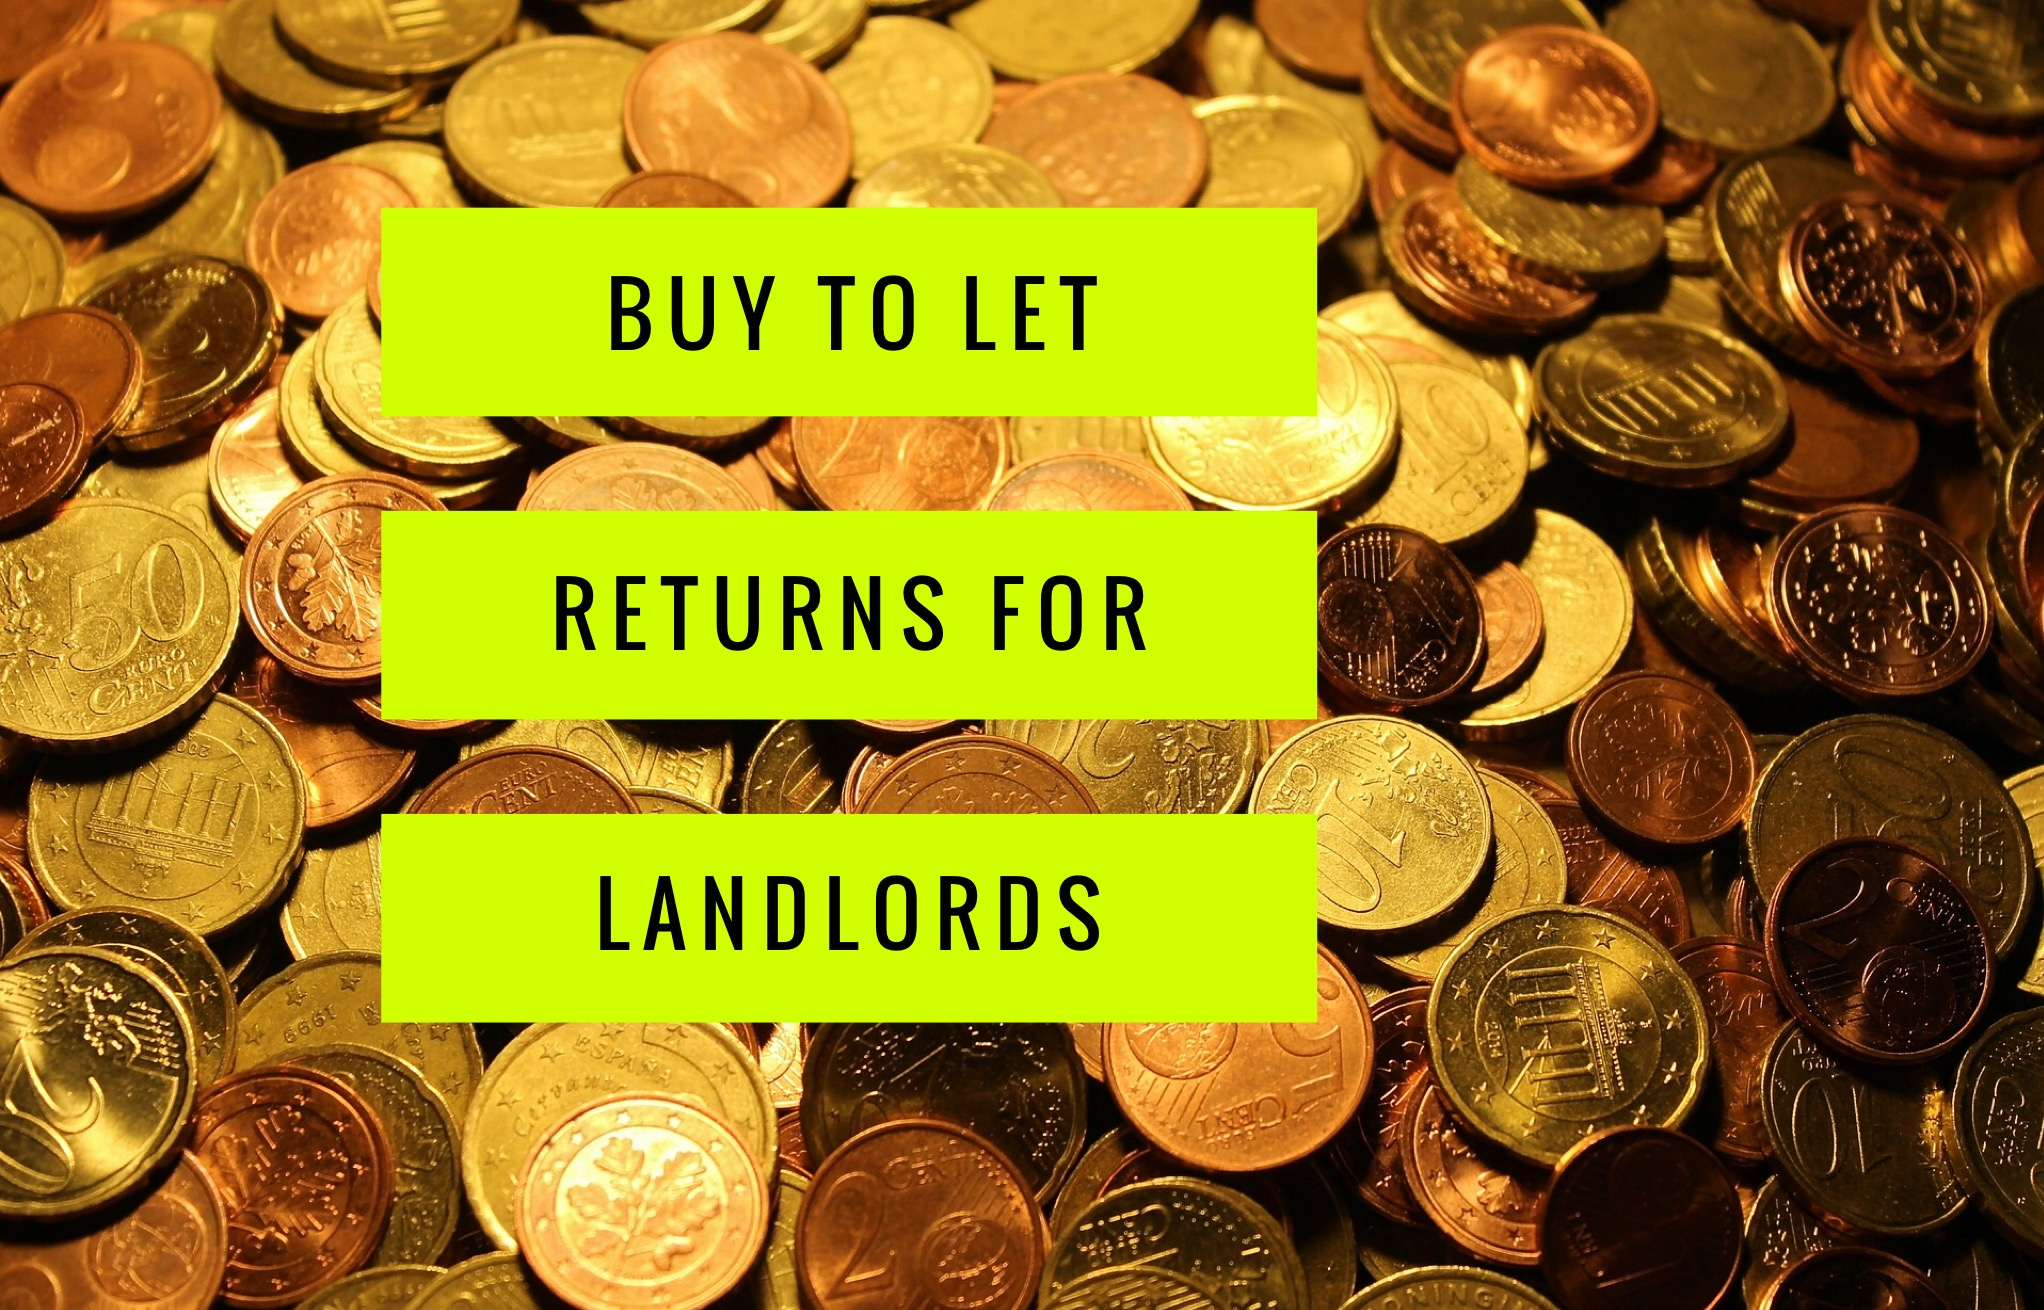 Canterbury Buy-to-Let Return / Yields – 3.3% to 7.4% a year